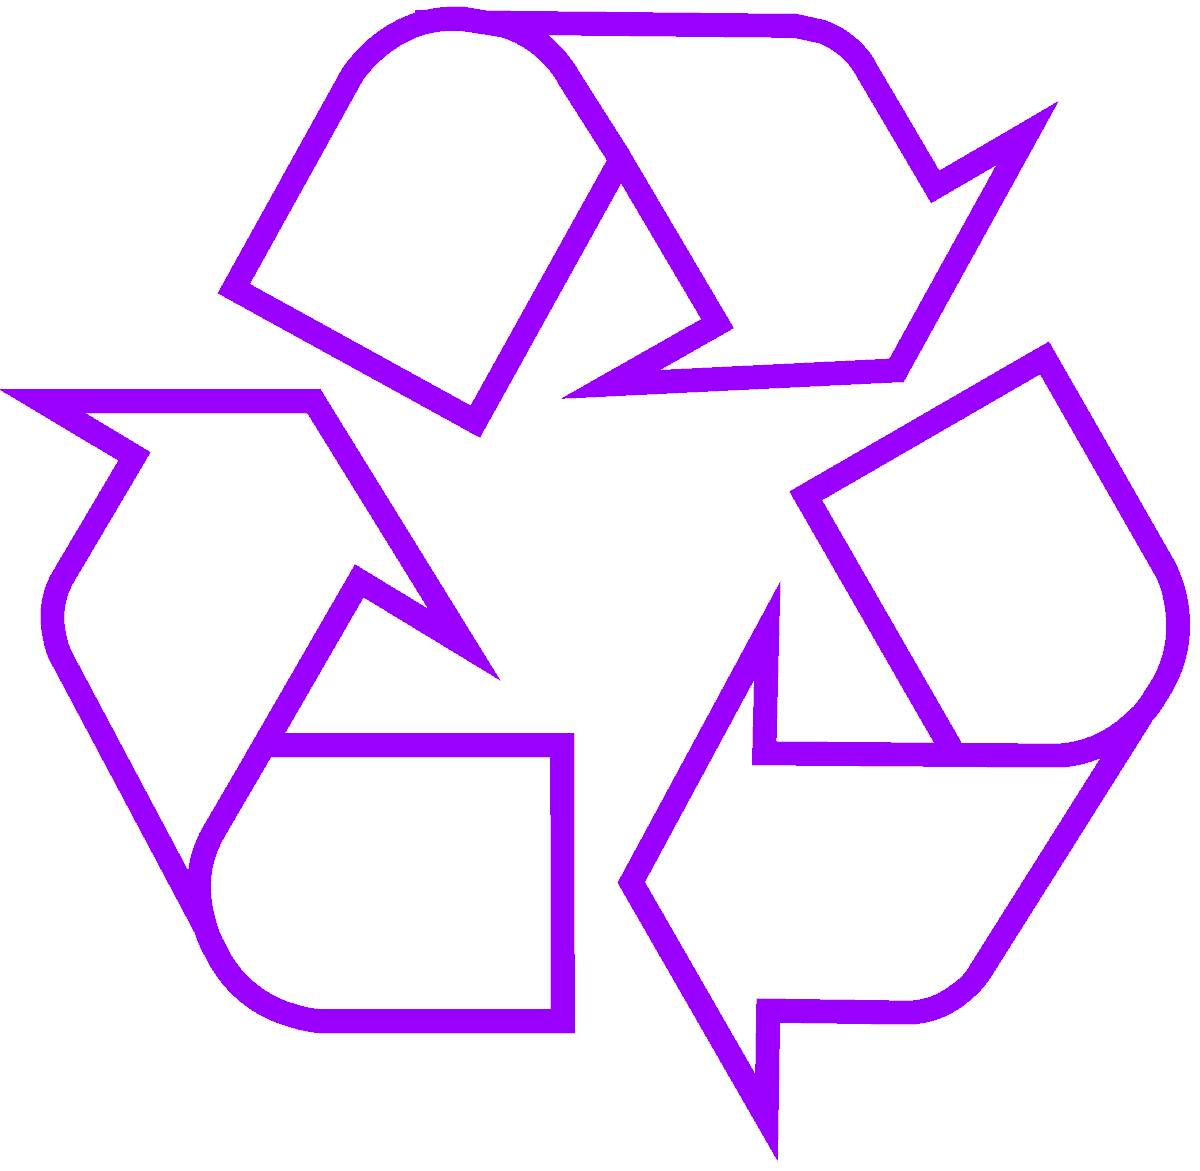 recycling-symbol-icon-outline-purple